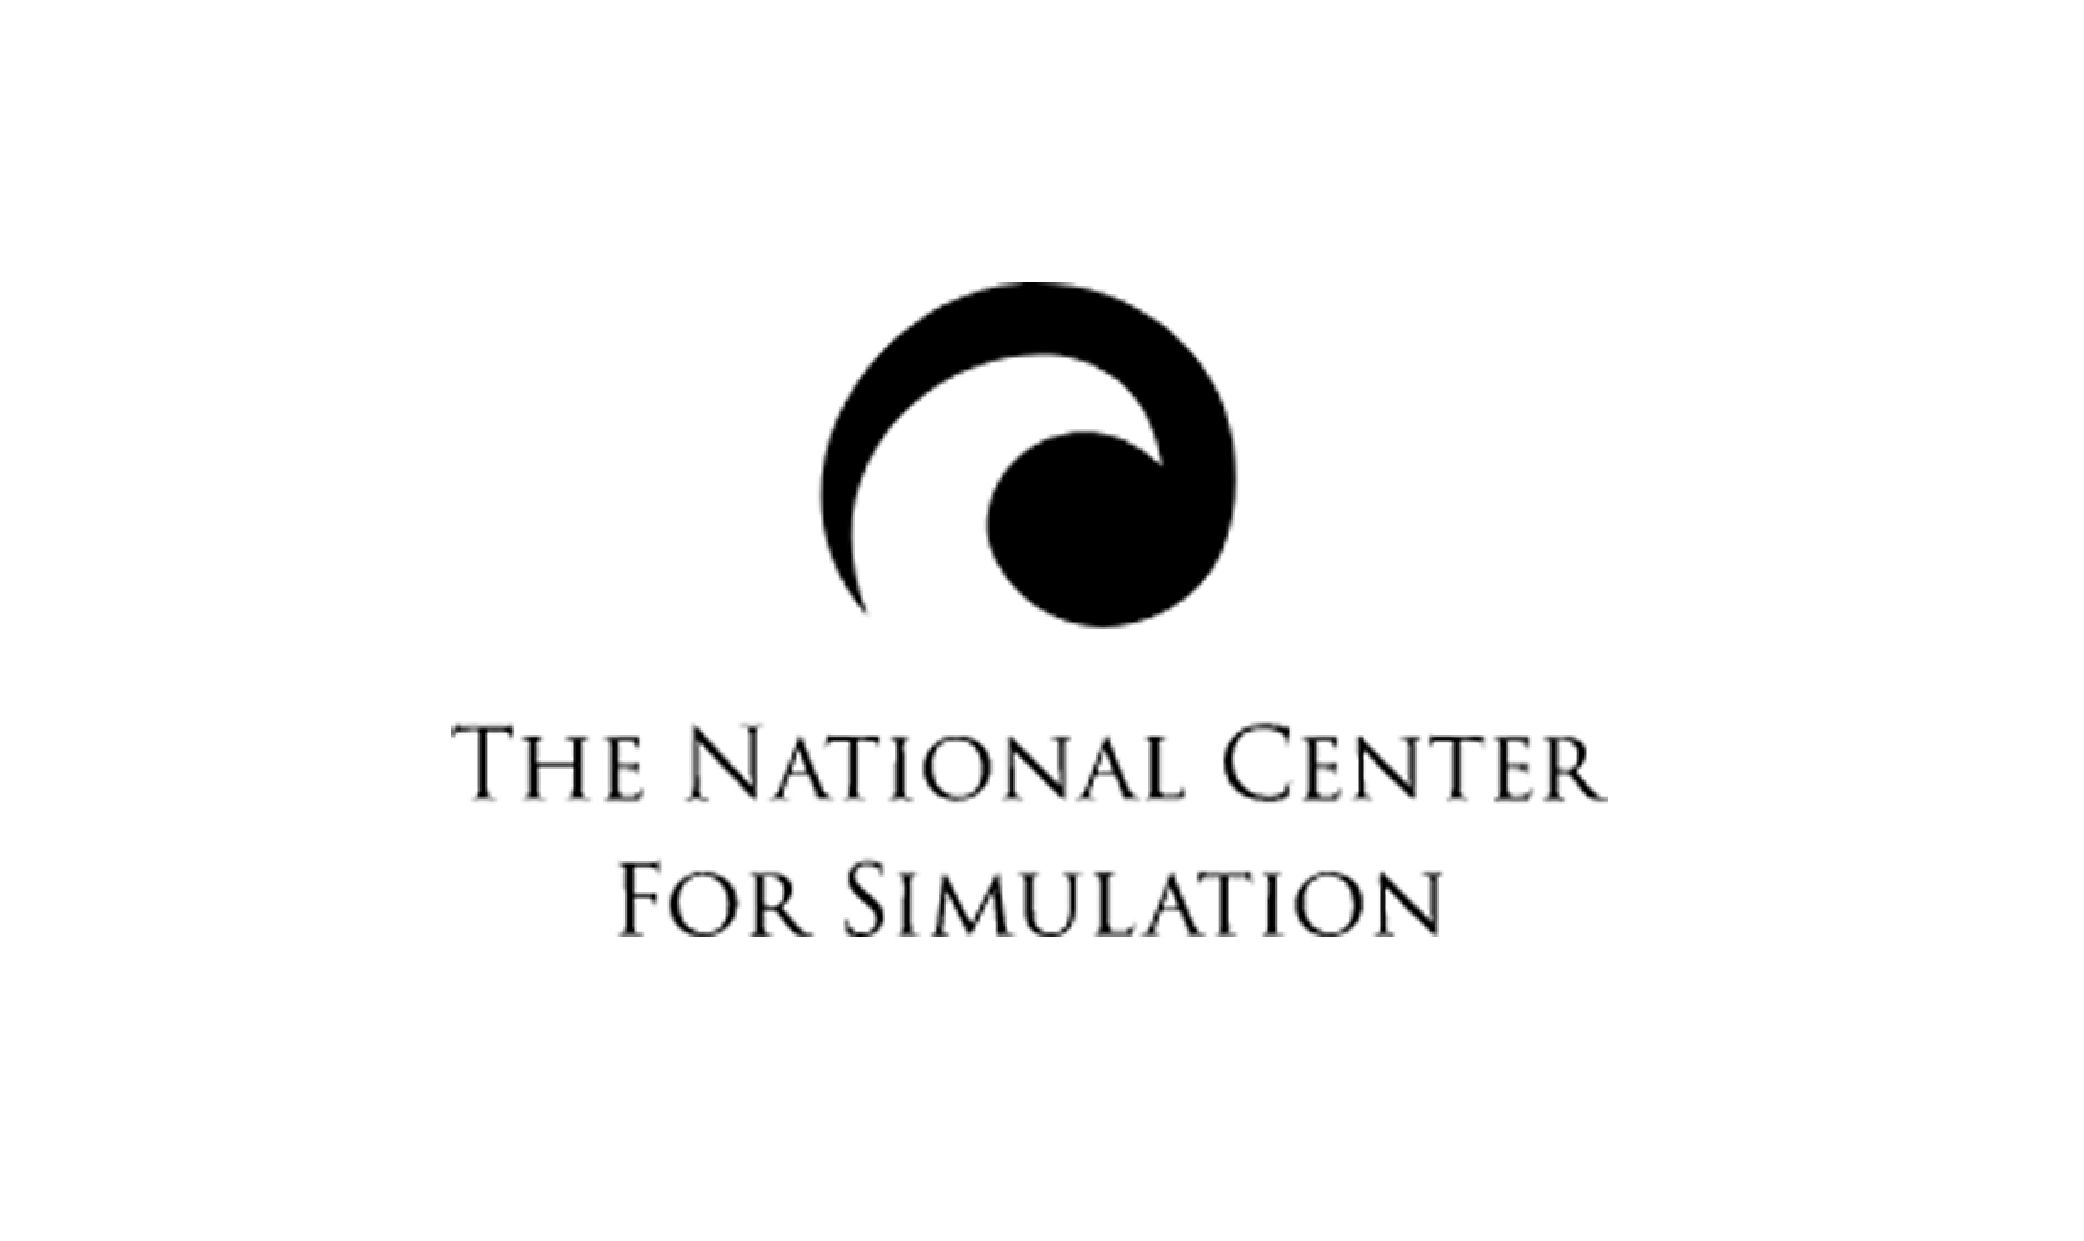 National center for simulationlogo